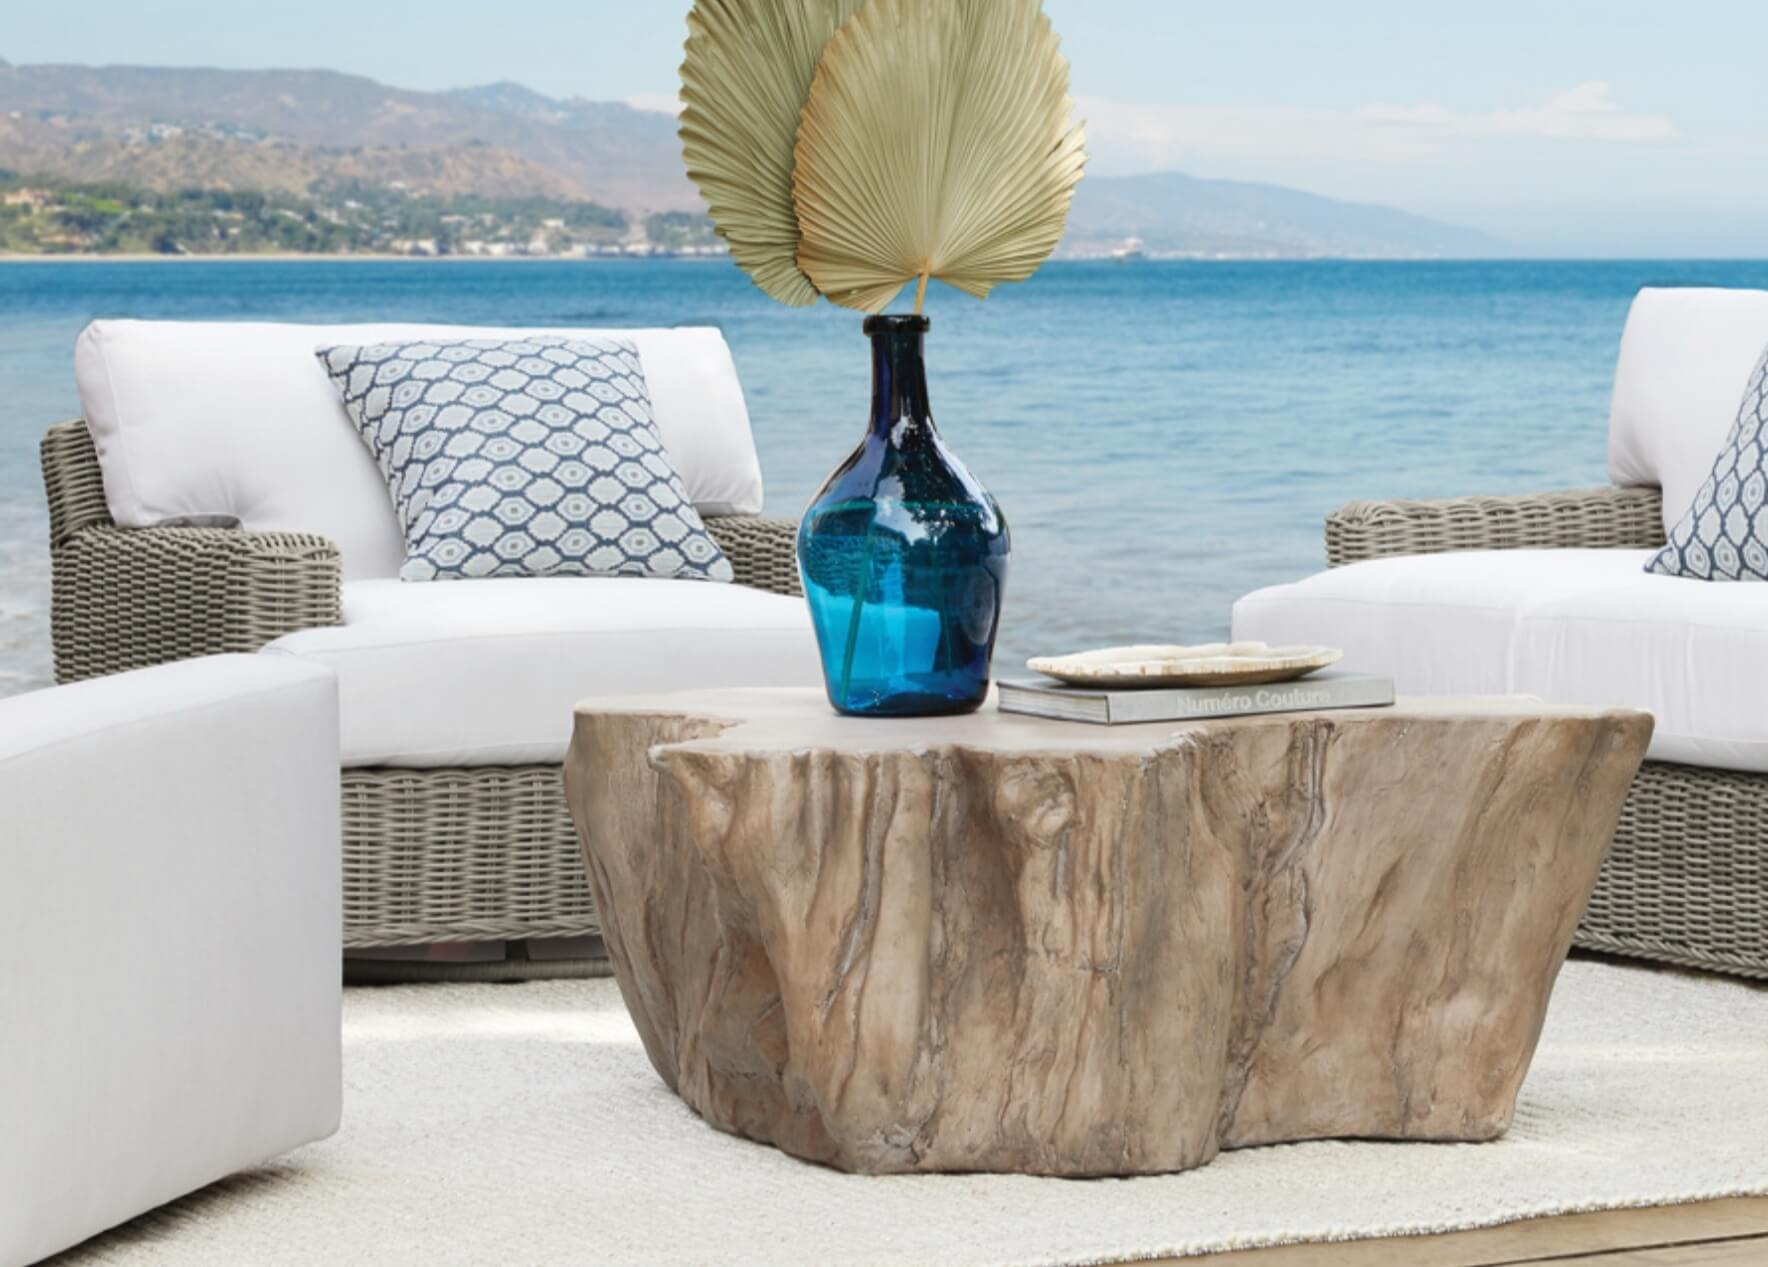 Another stump transformed into beautiful furniture